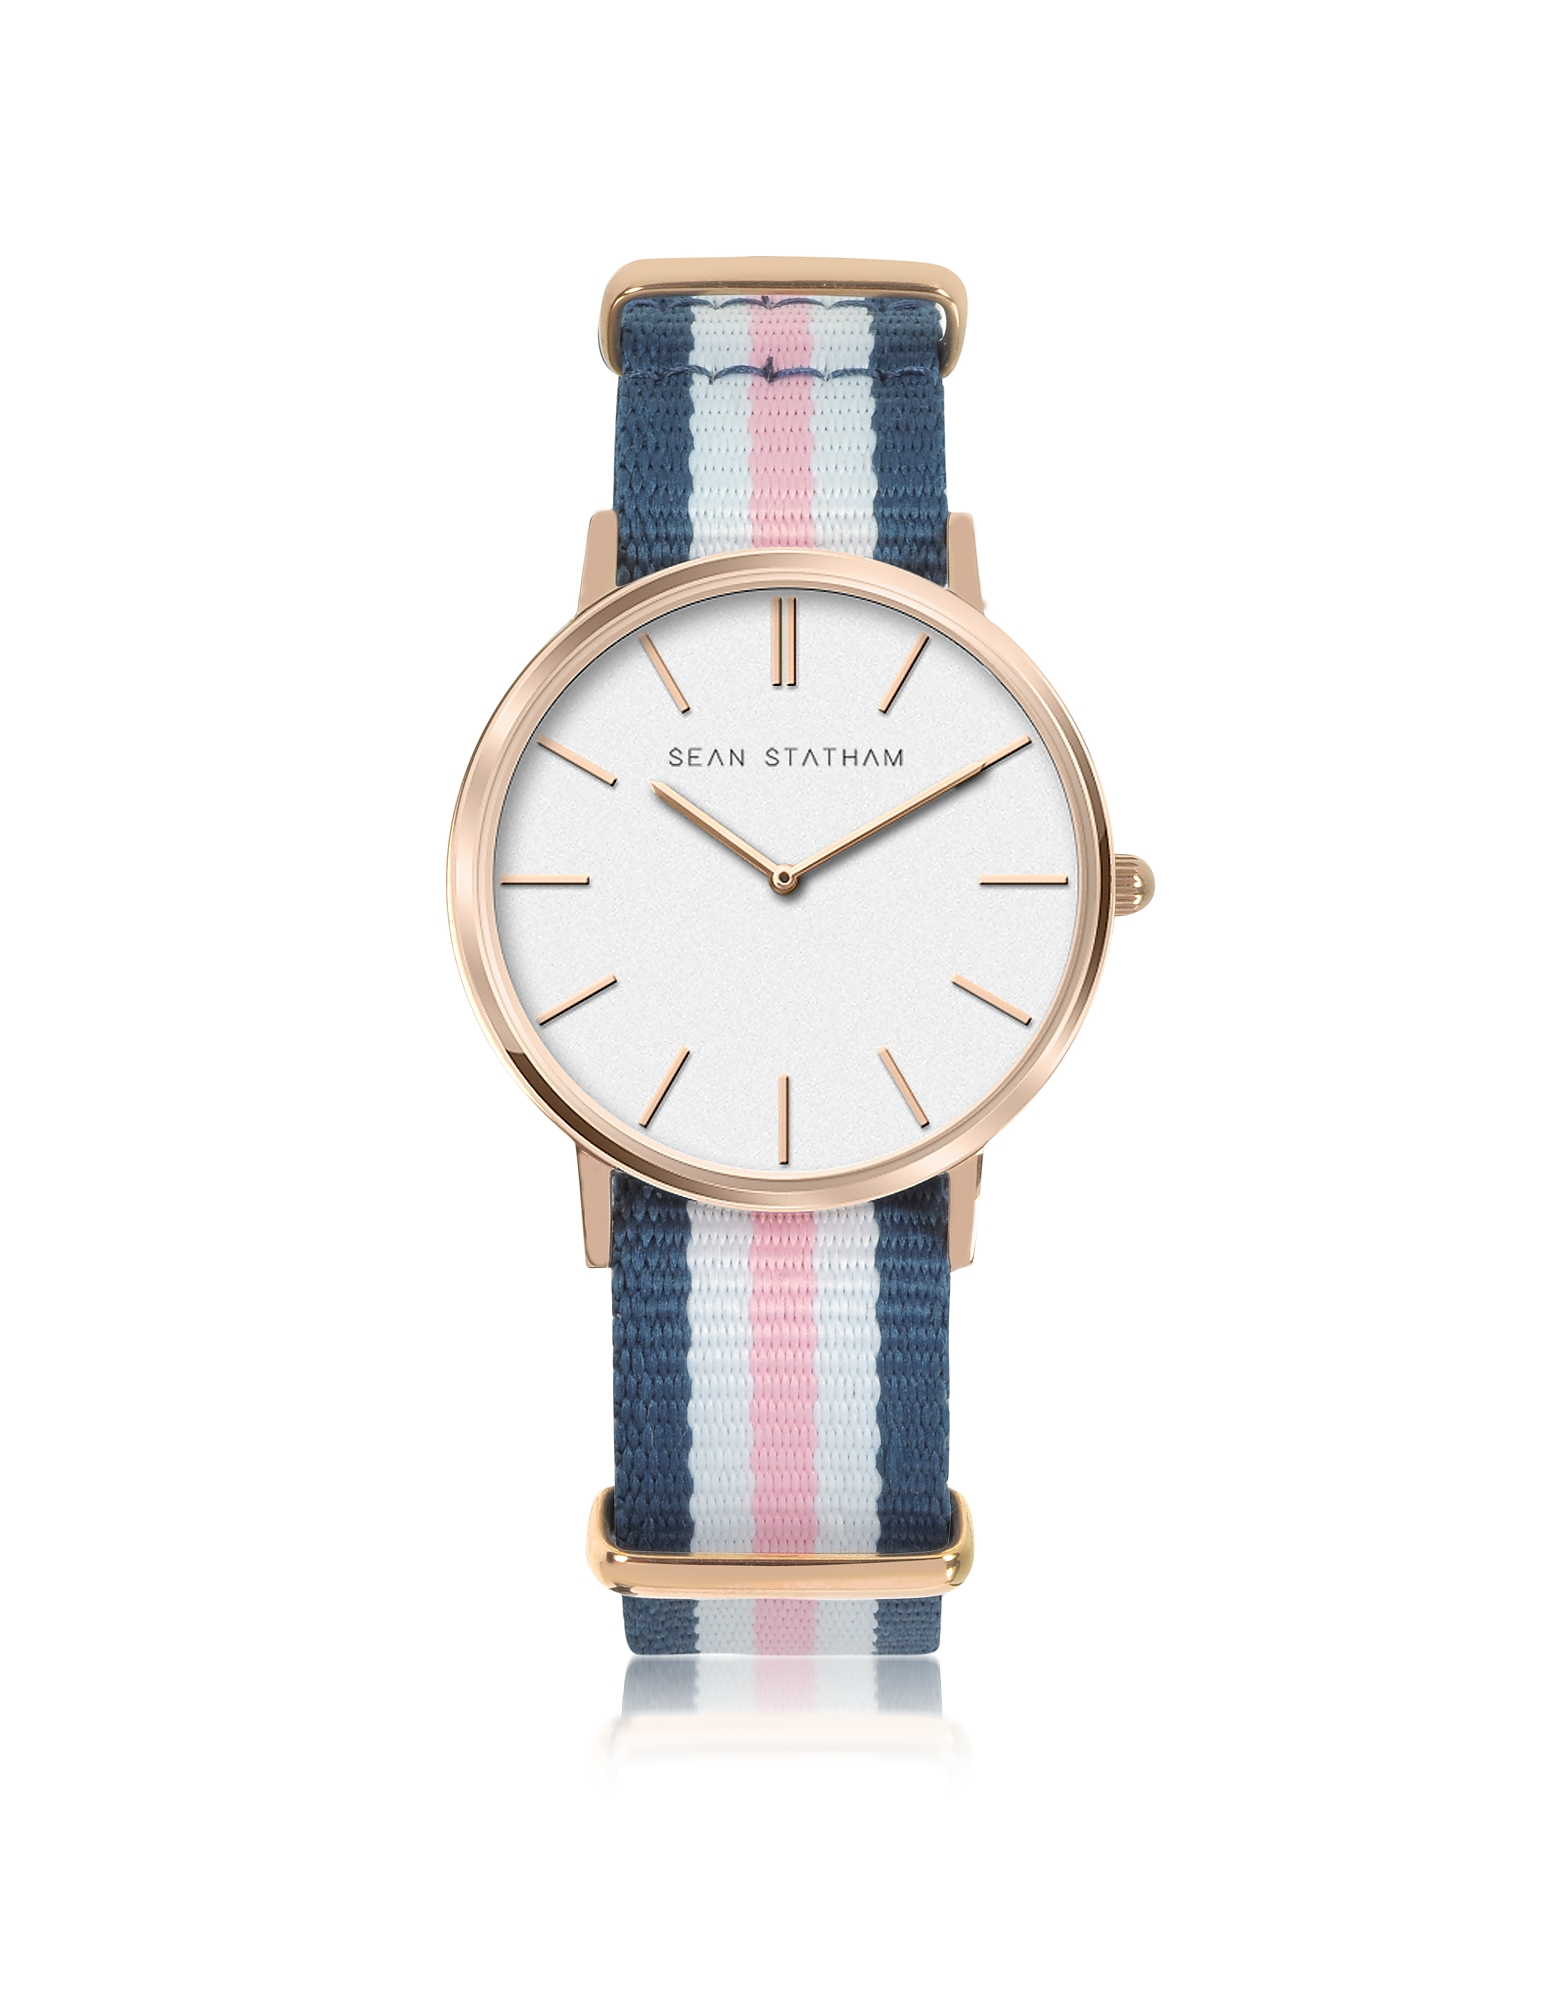 Image of Sean Statham Designer Women's Watches, Rose Goldtone Stainless Steel Unisex Quartz Watch w/Blue and Pink Striped Canvas Band